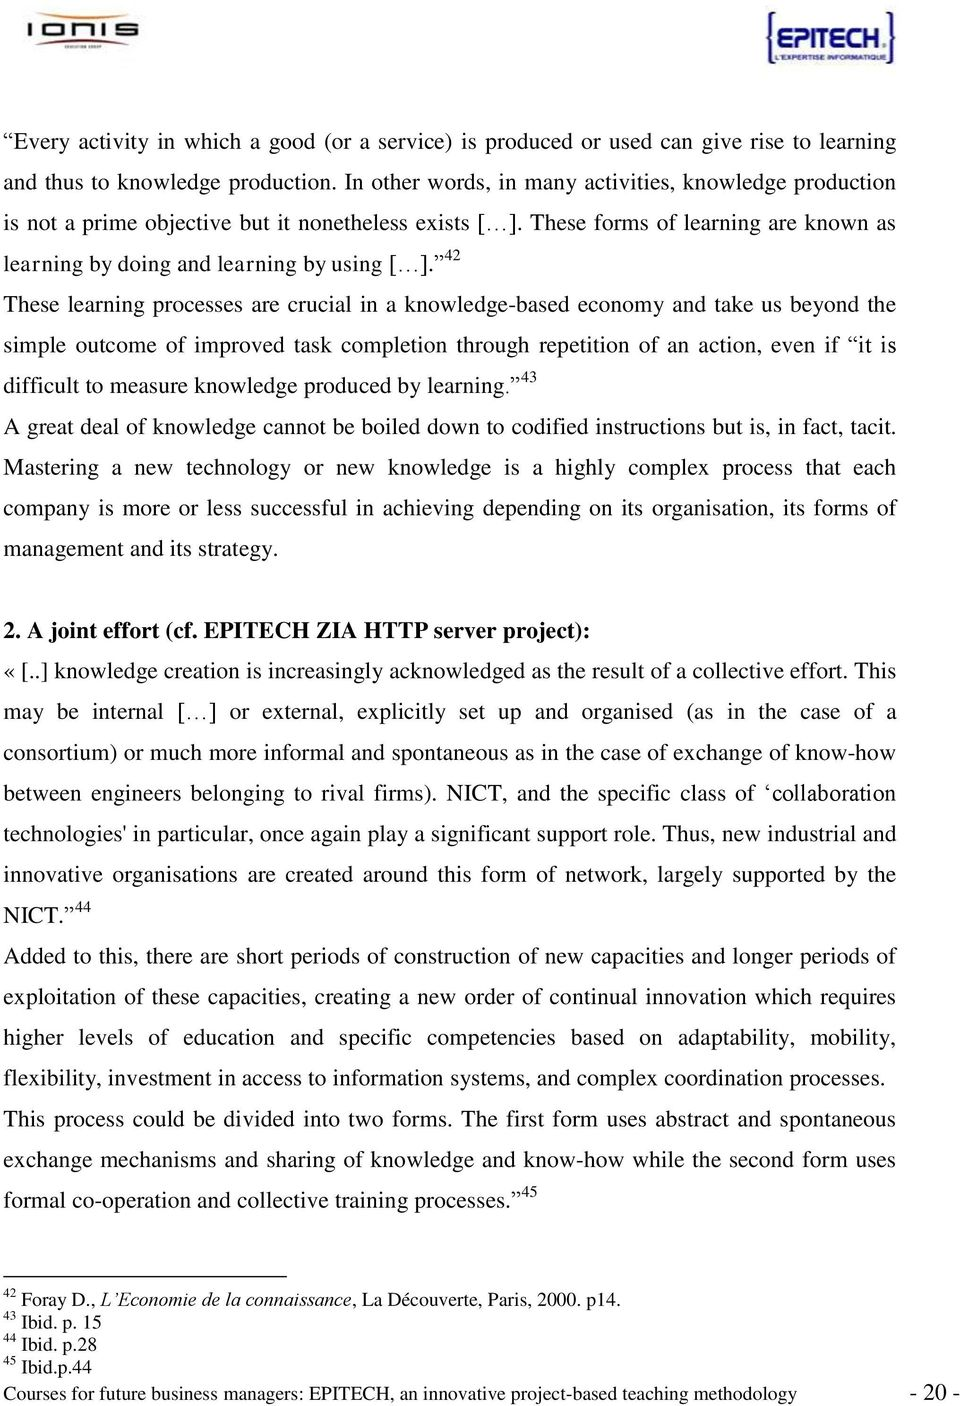 42 These learning processes are crucial in a knowledge-based economy and take us beyond the simple outcome of improved task completion through repetition of an action, even if it is difficult to